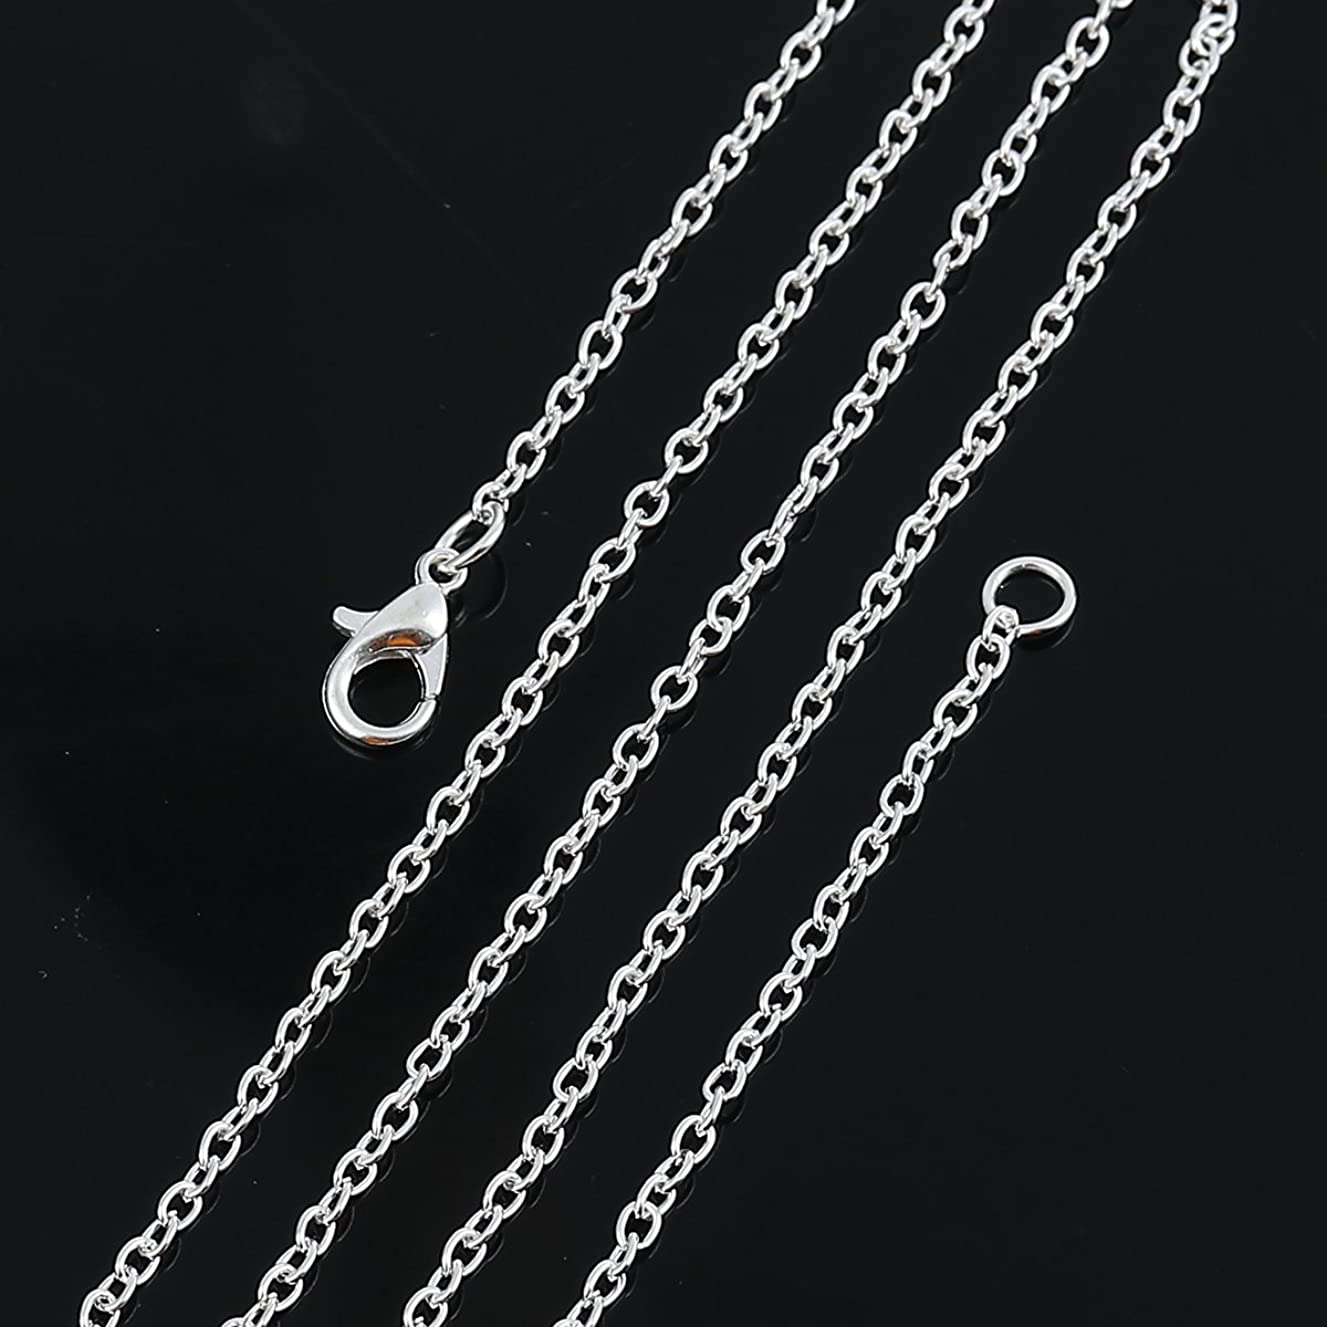 Silver Tone Cable Link Chain, Wholesale 12 Pieces and 17 7/8 Inches Long (3 x 2.2mm)